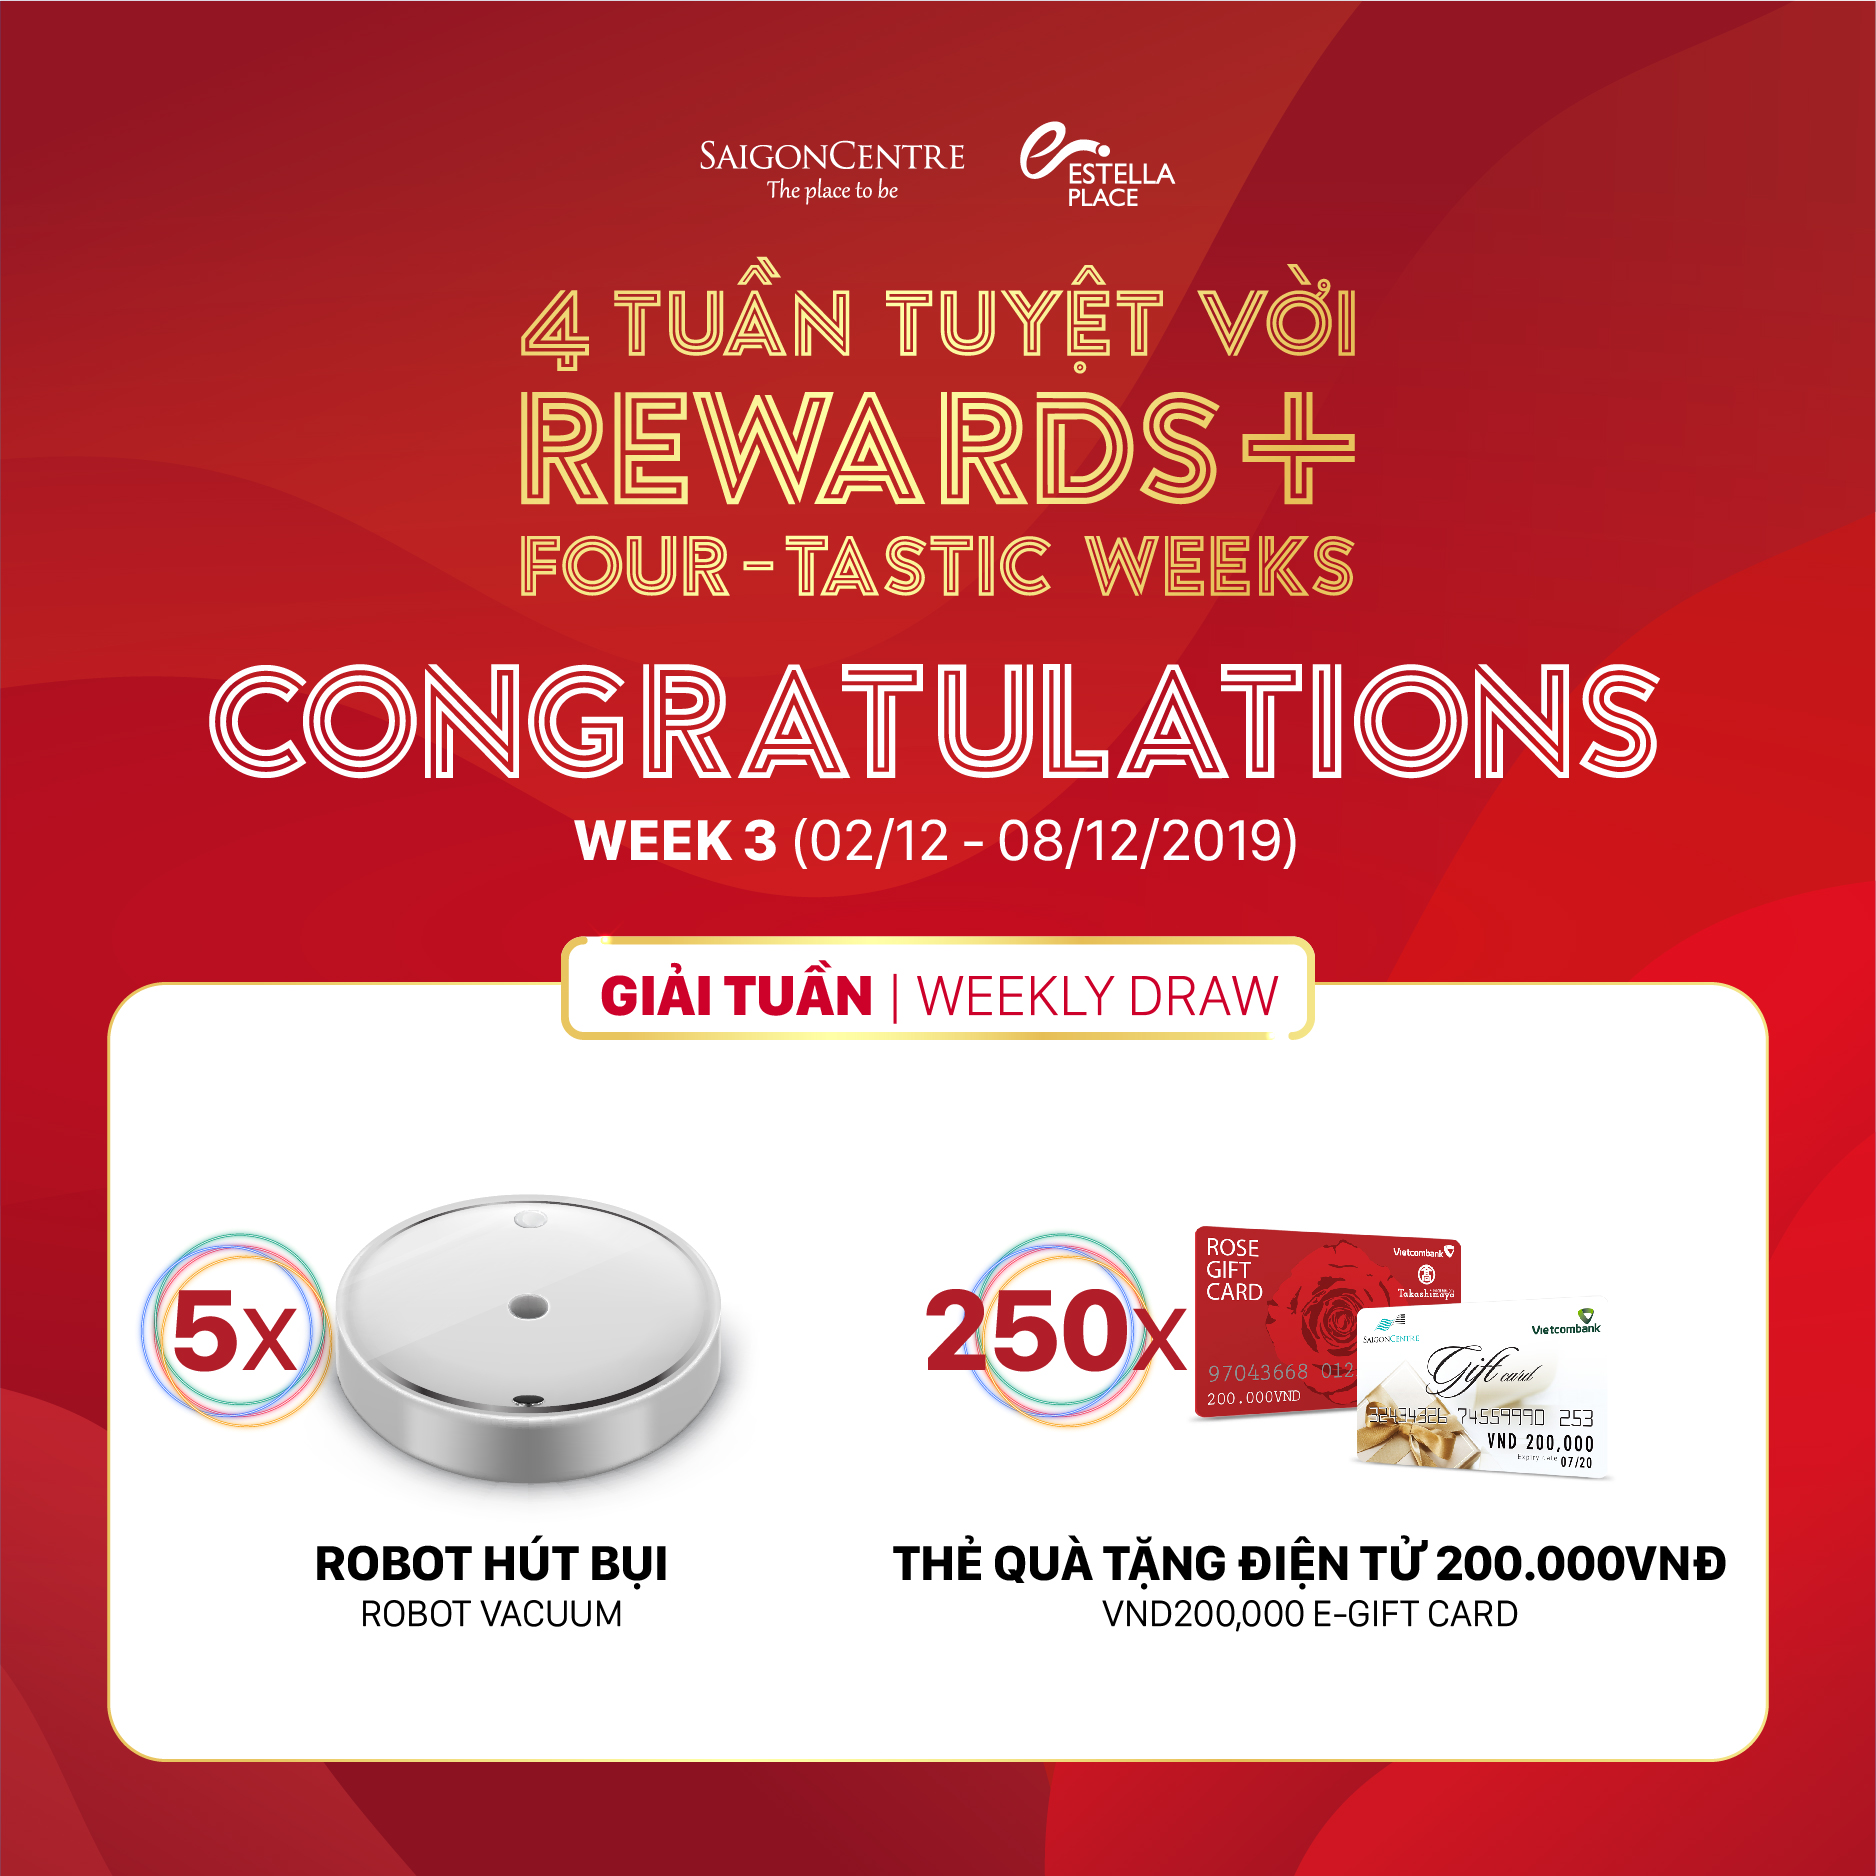 📣 REWARDS+ FOUR-TASTIC PROMOTION – WEEK 3 WINNERS